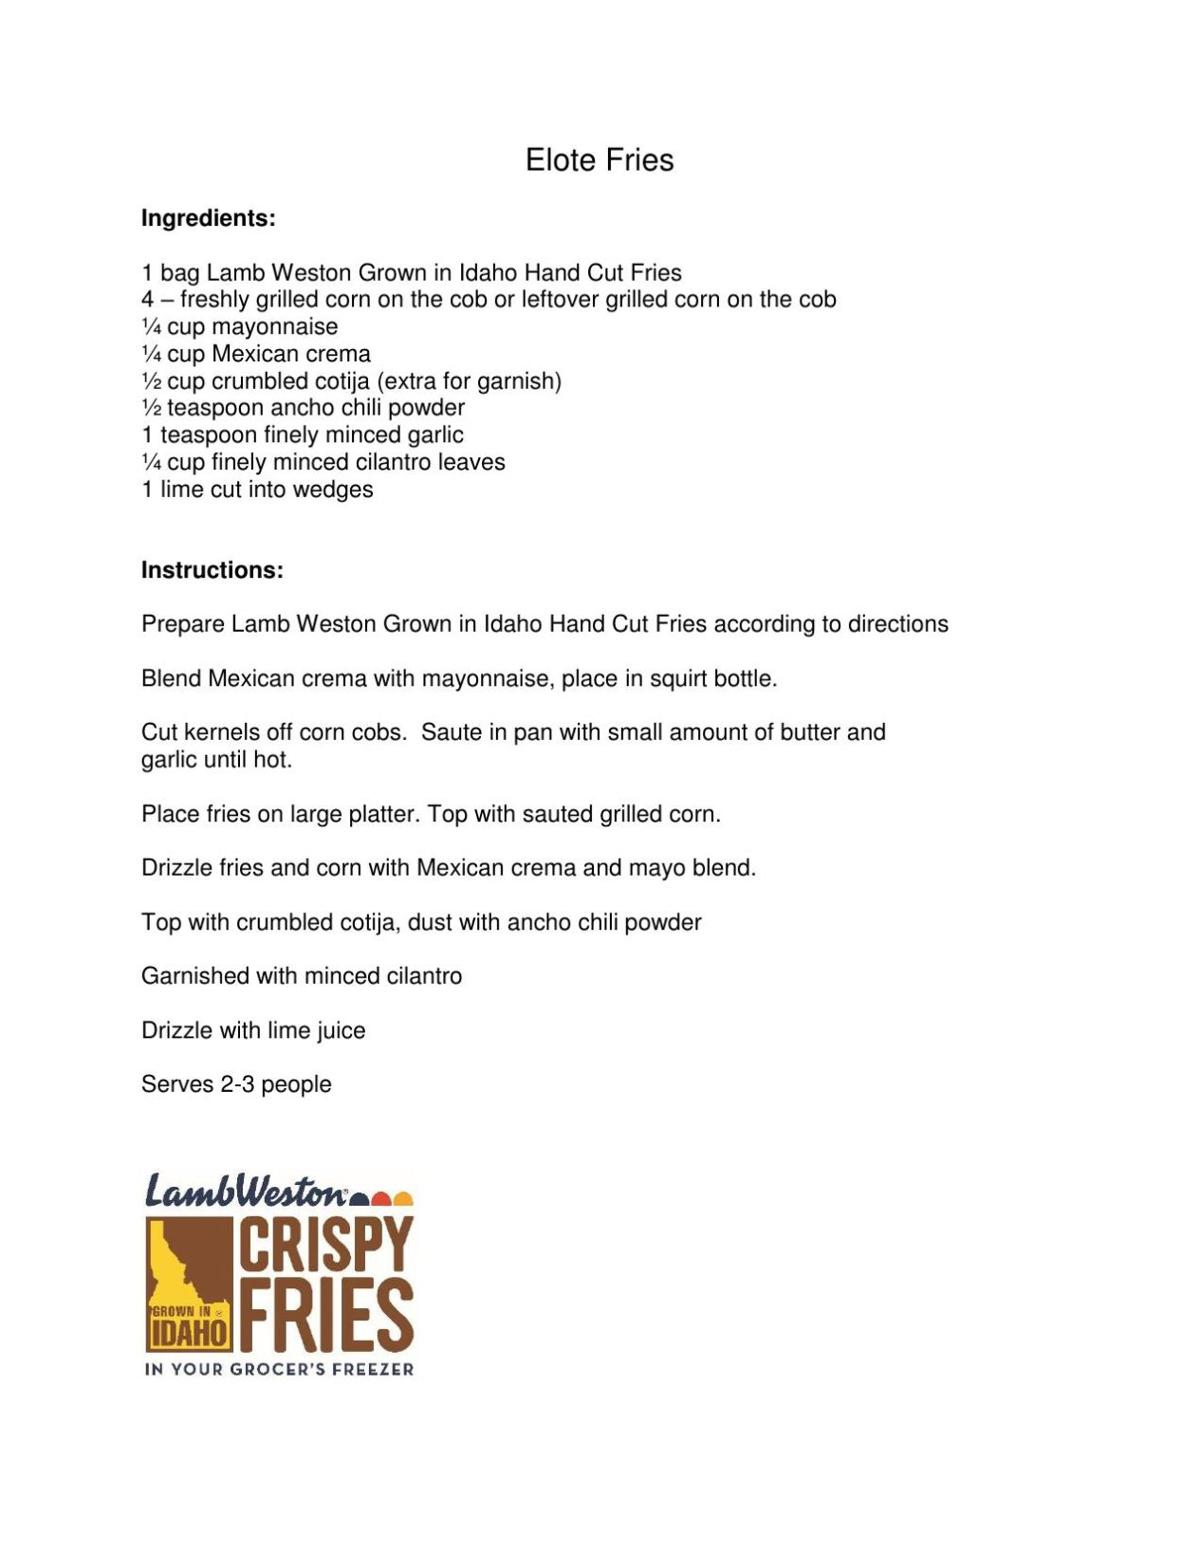 July 13th - Elote Fries